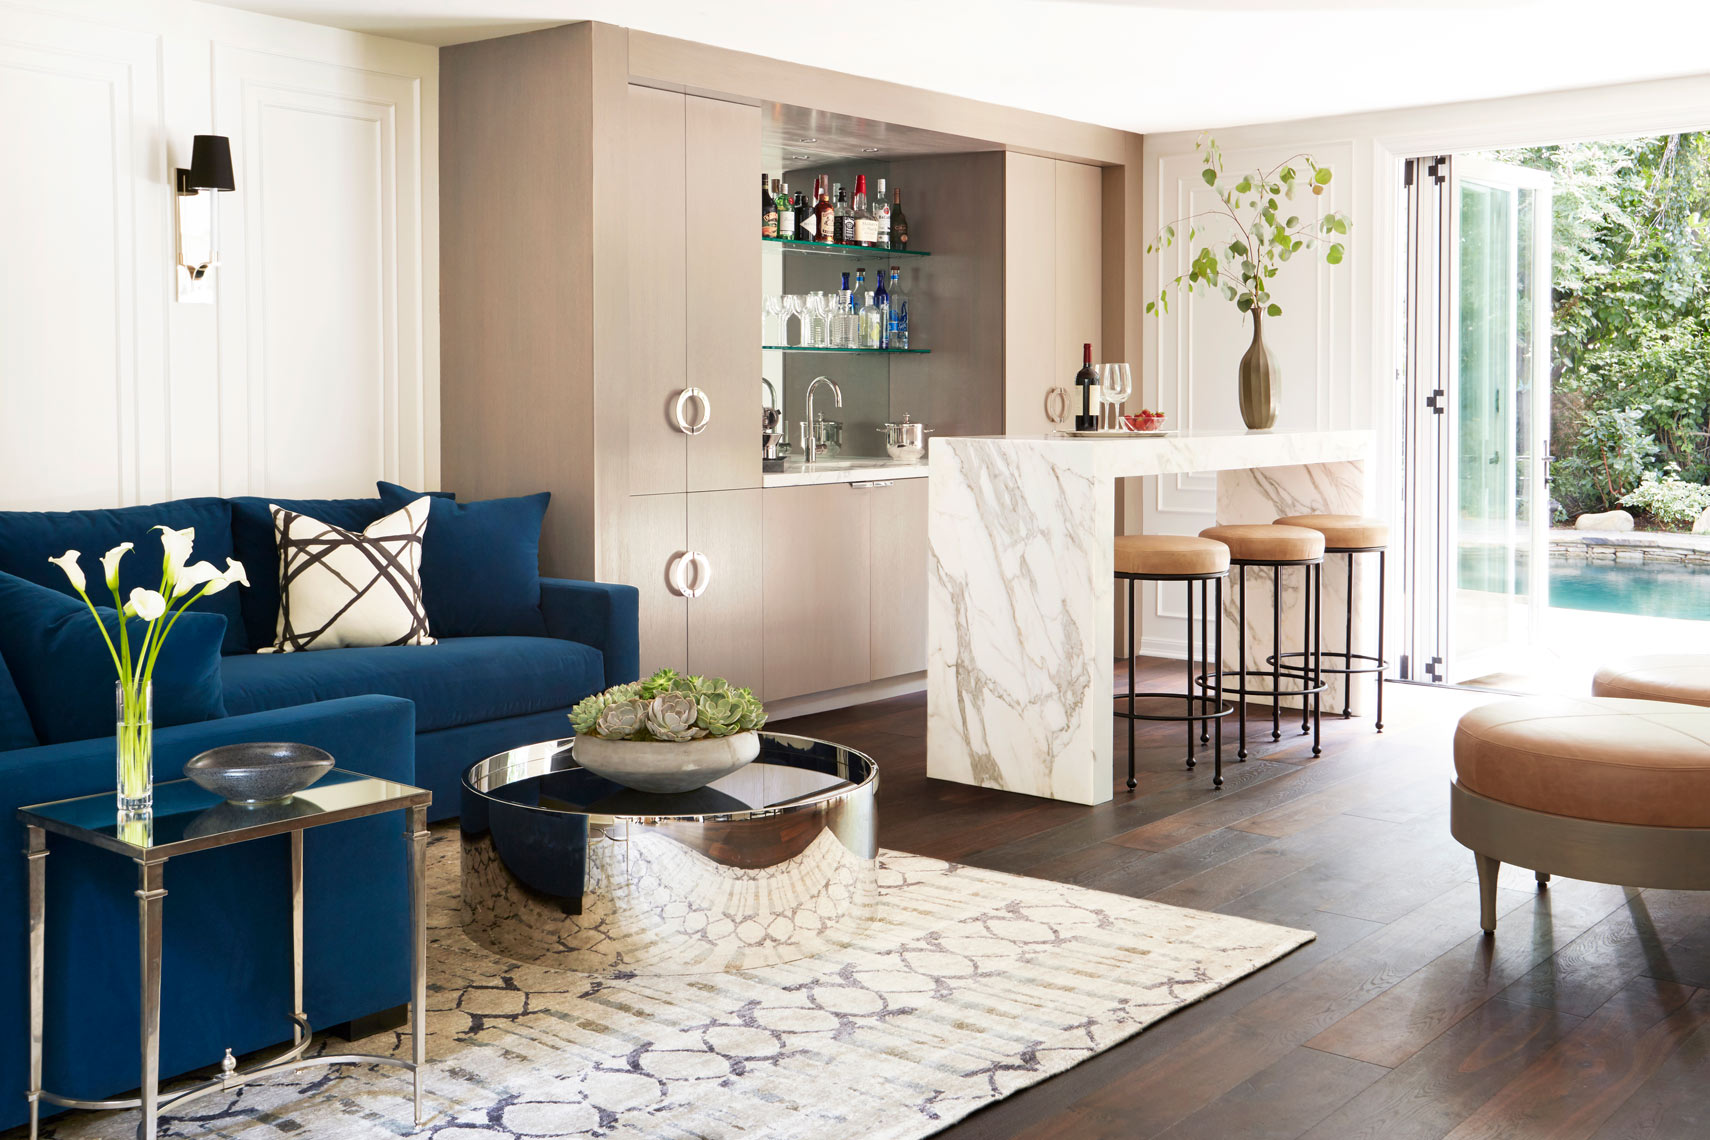 Lori_Gilder_Encino_Bar_Project